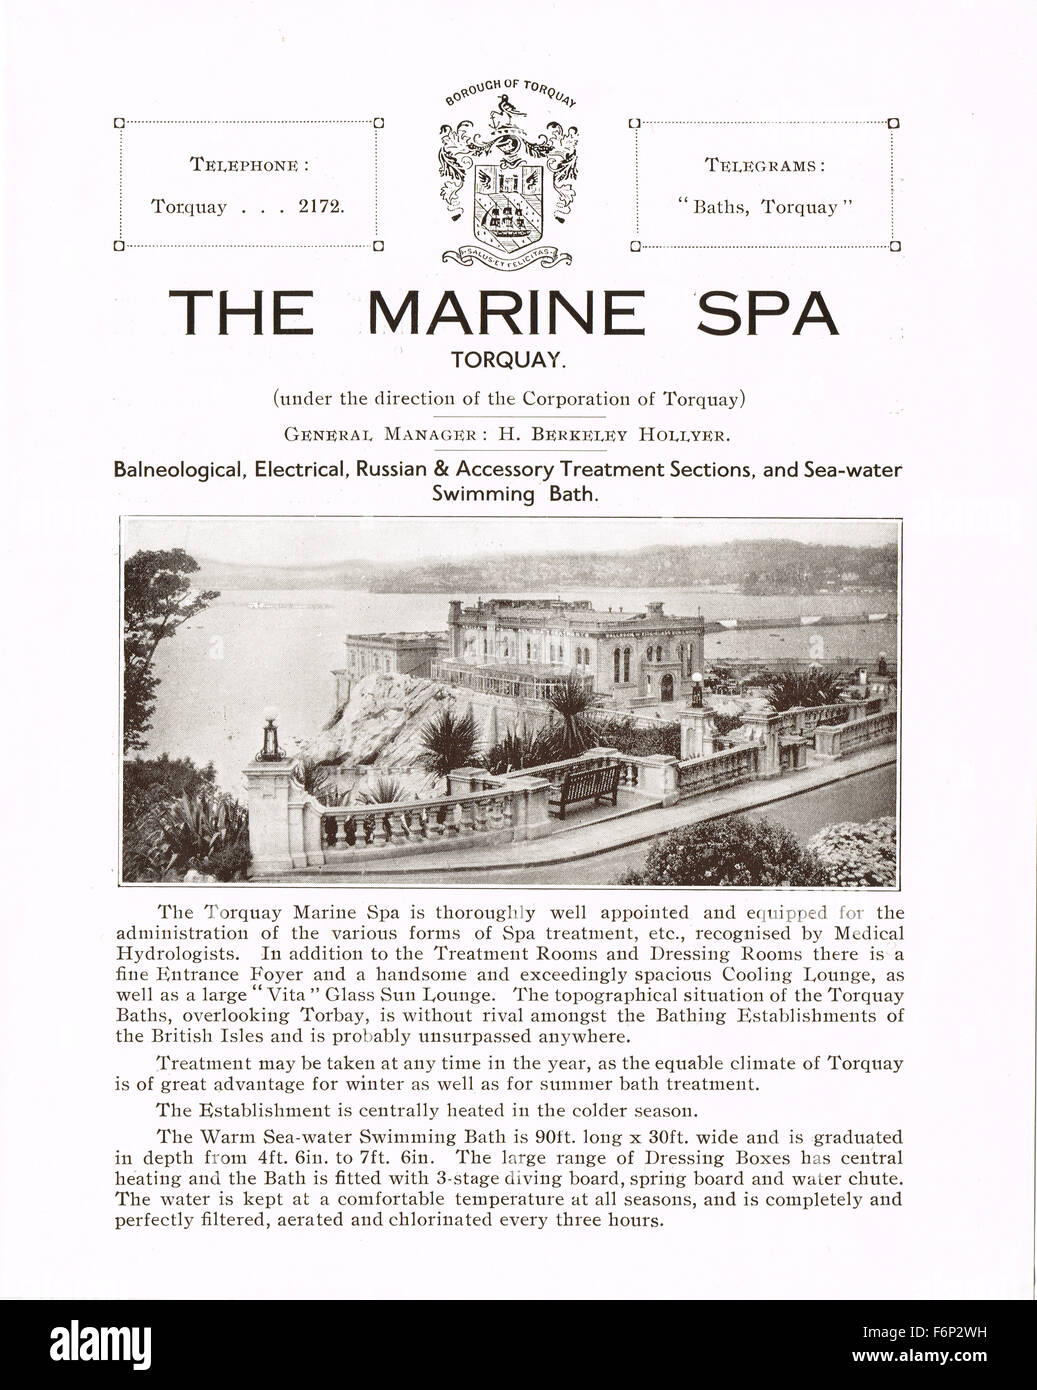 1935 advert / flyer for the now demolished Marine Spa, Torquay, Devon - Stock Image